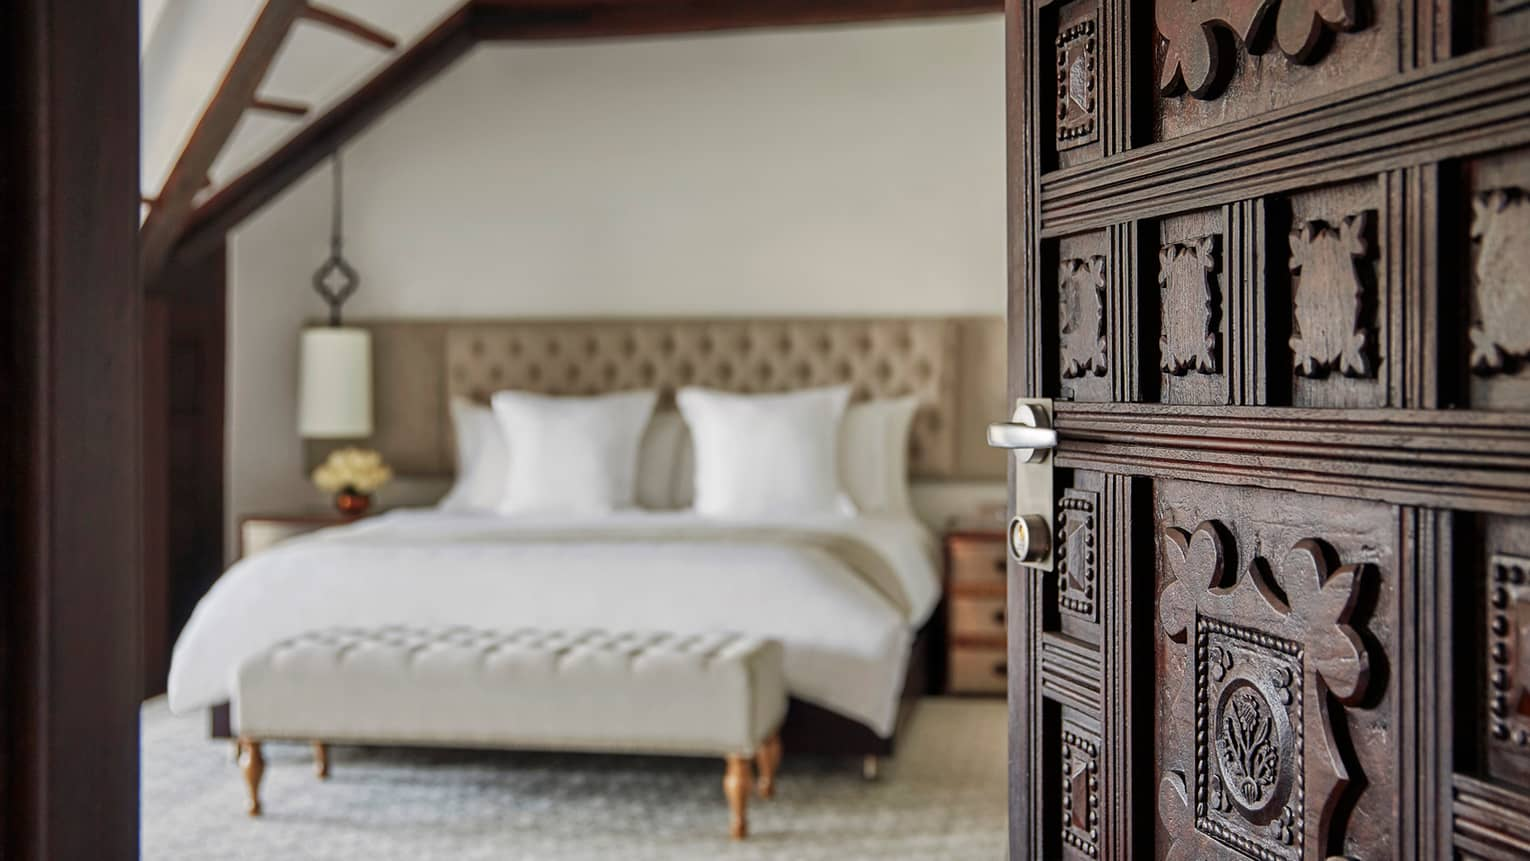 Premier Room close-up of decorative wood carved door opening to bedroom, bed with white linens, padded headboard